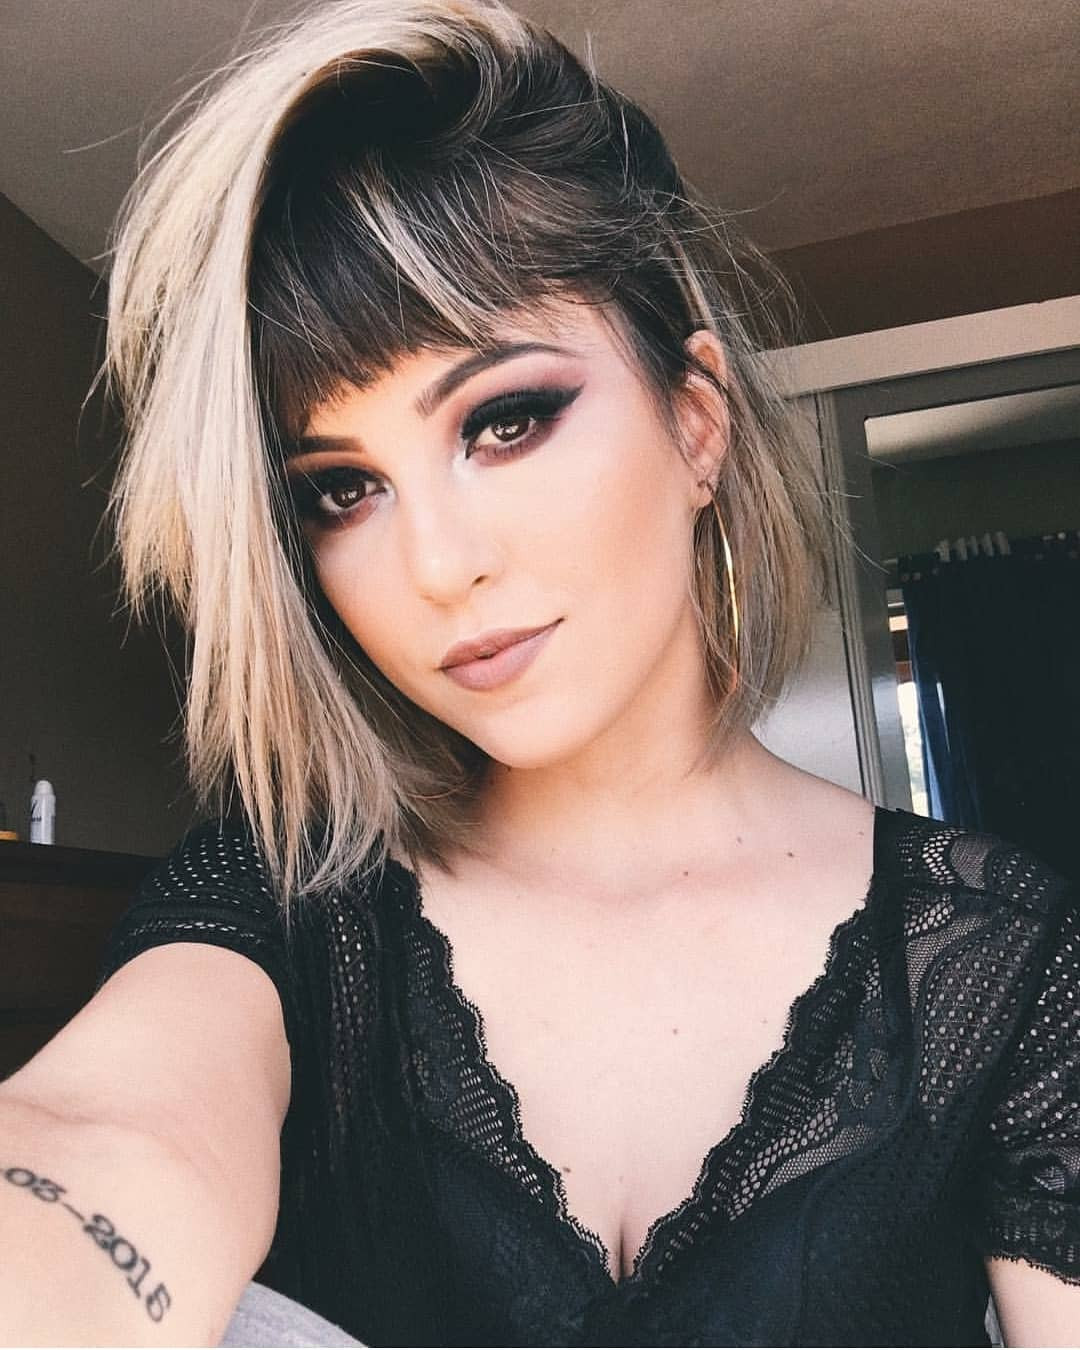 Best ideas about Girls Haircuts . Save or Pin 10 Cute Short Hairstyles and Haircuts for Young Girls Now.